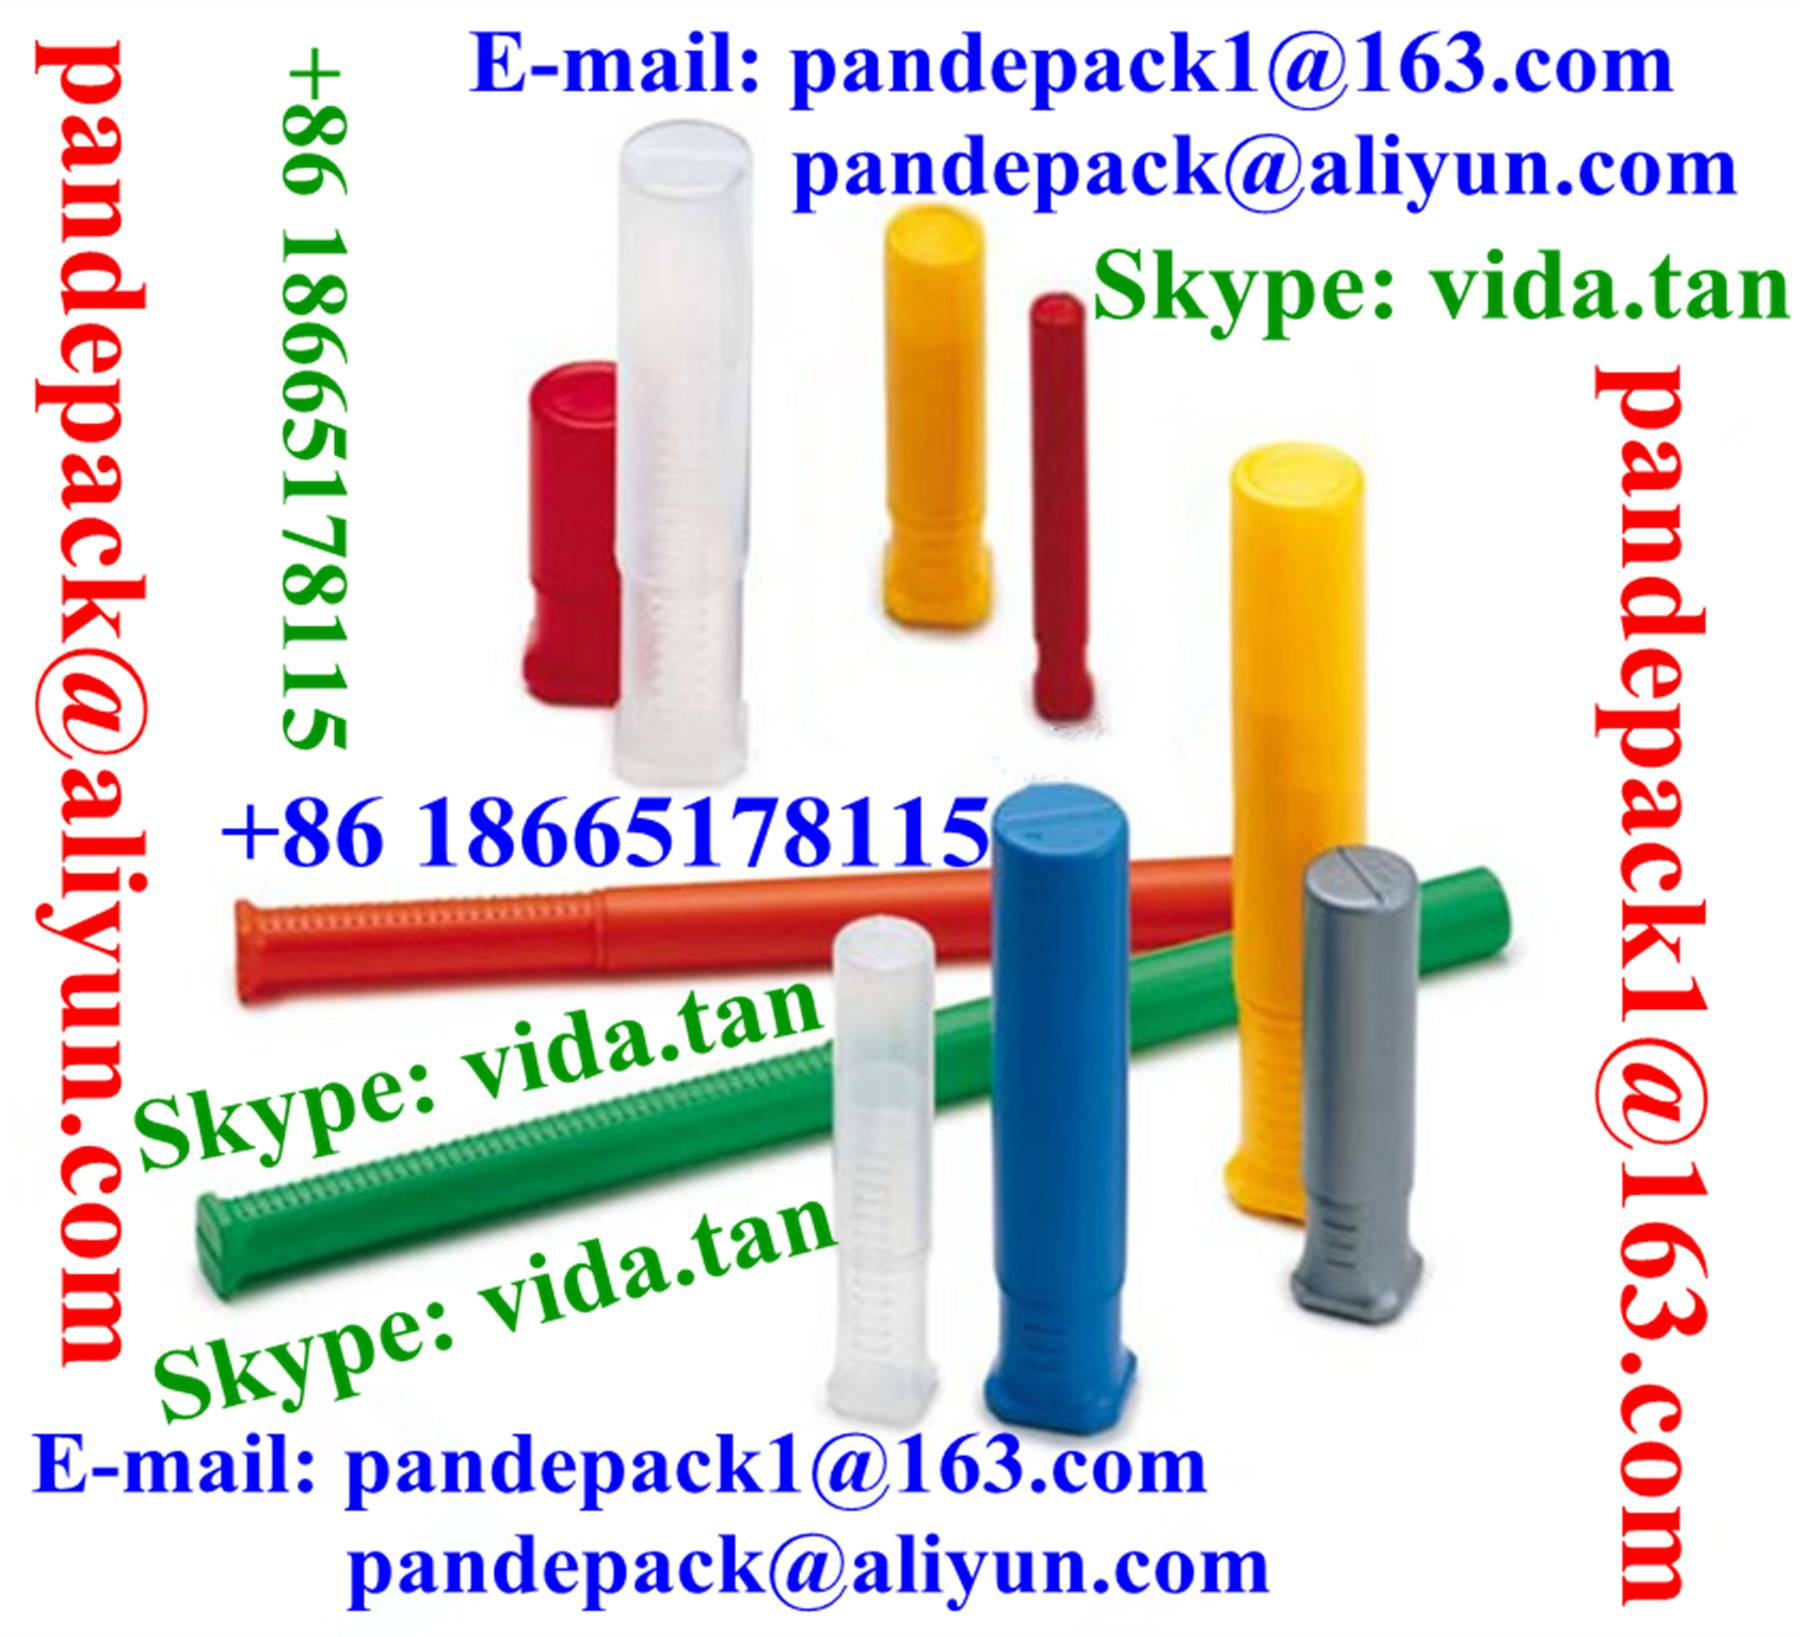 Sell TelePack/CNC Cutting Tool Box/Pack/Package/Tube/Plastic Box/Pack/Package/Tube/Tool Box/Pack